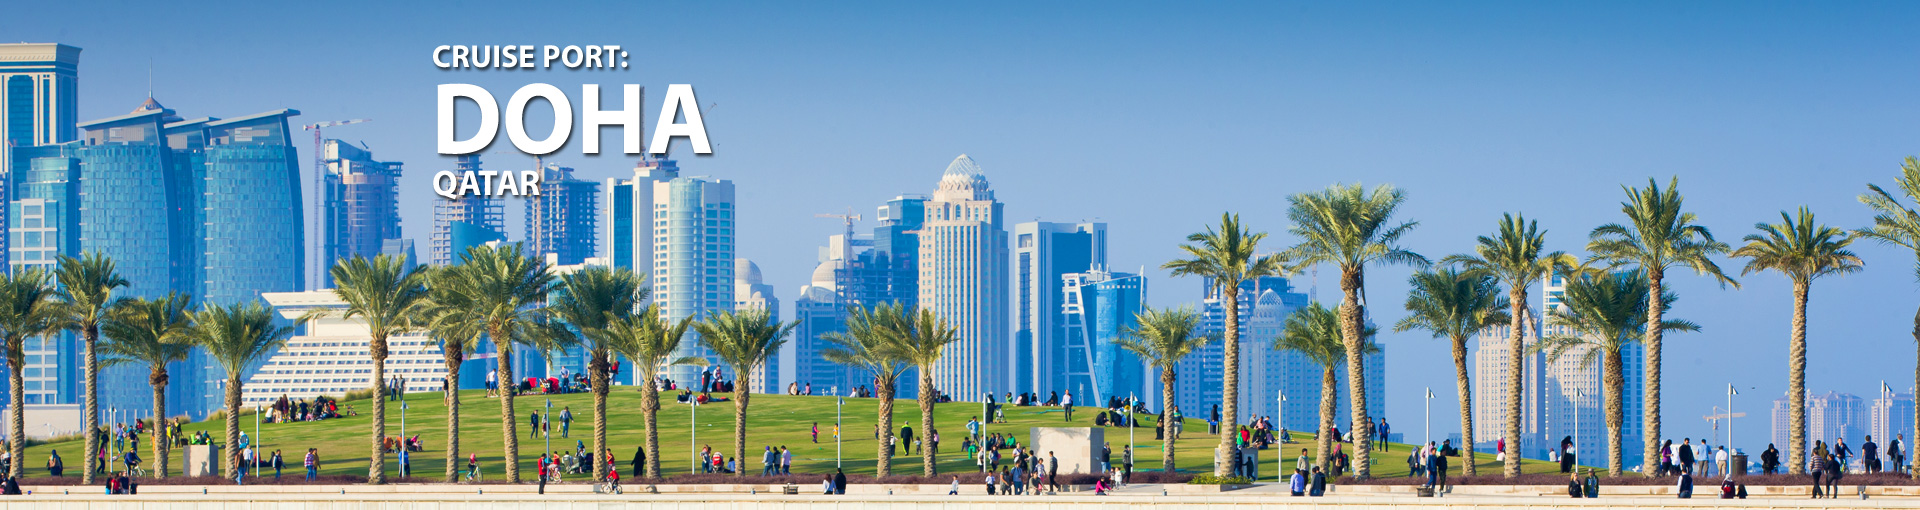 Cruises to Doha, Qatar